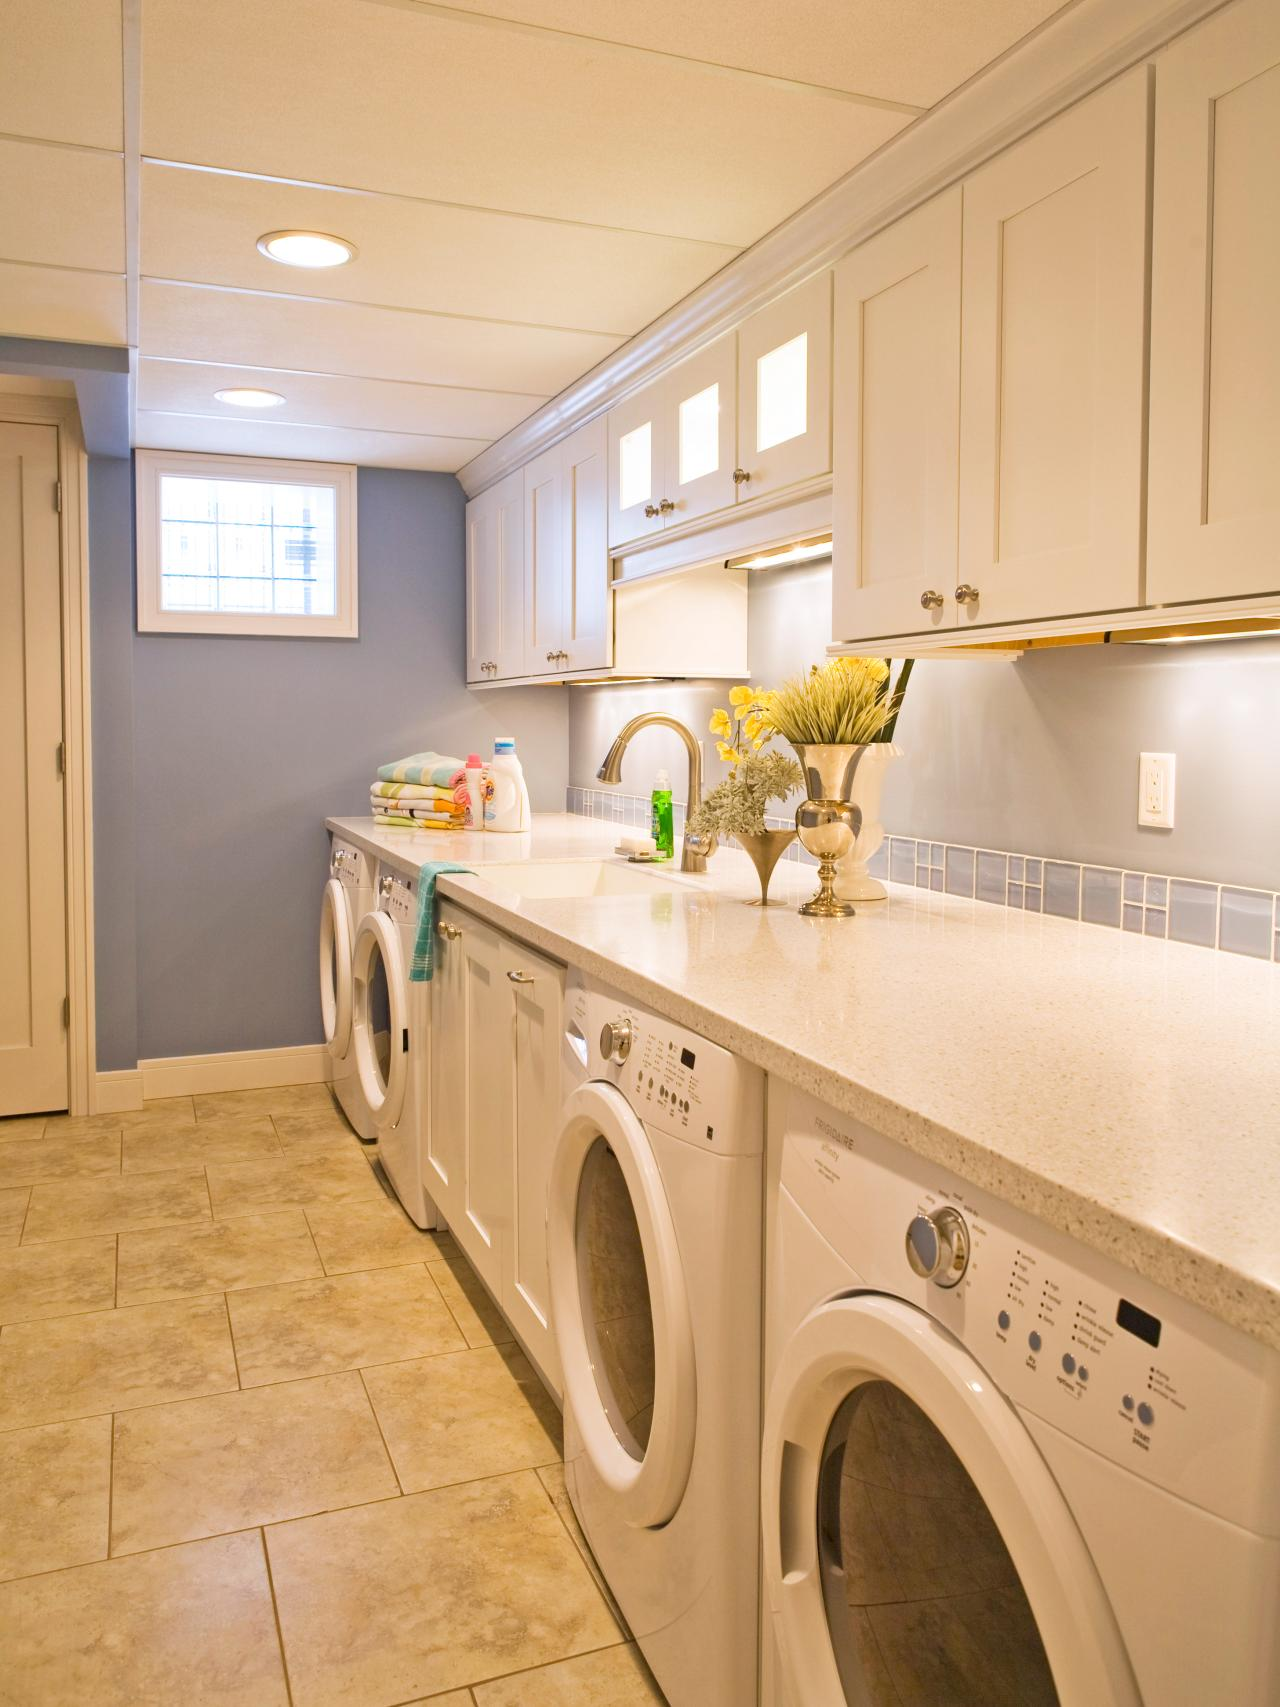 Laundry room decorating ideas joy studio design gallery Laundry room blueprints